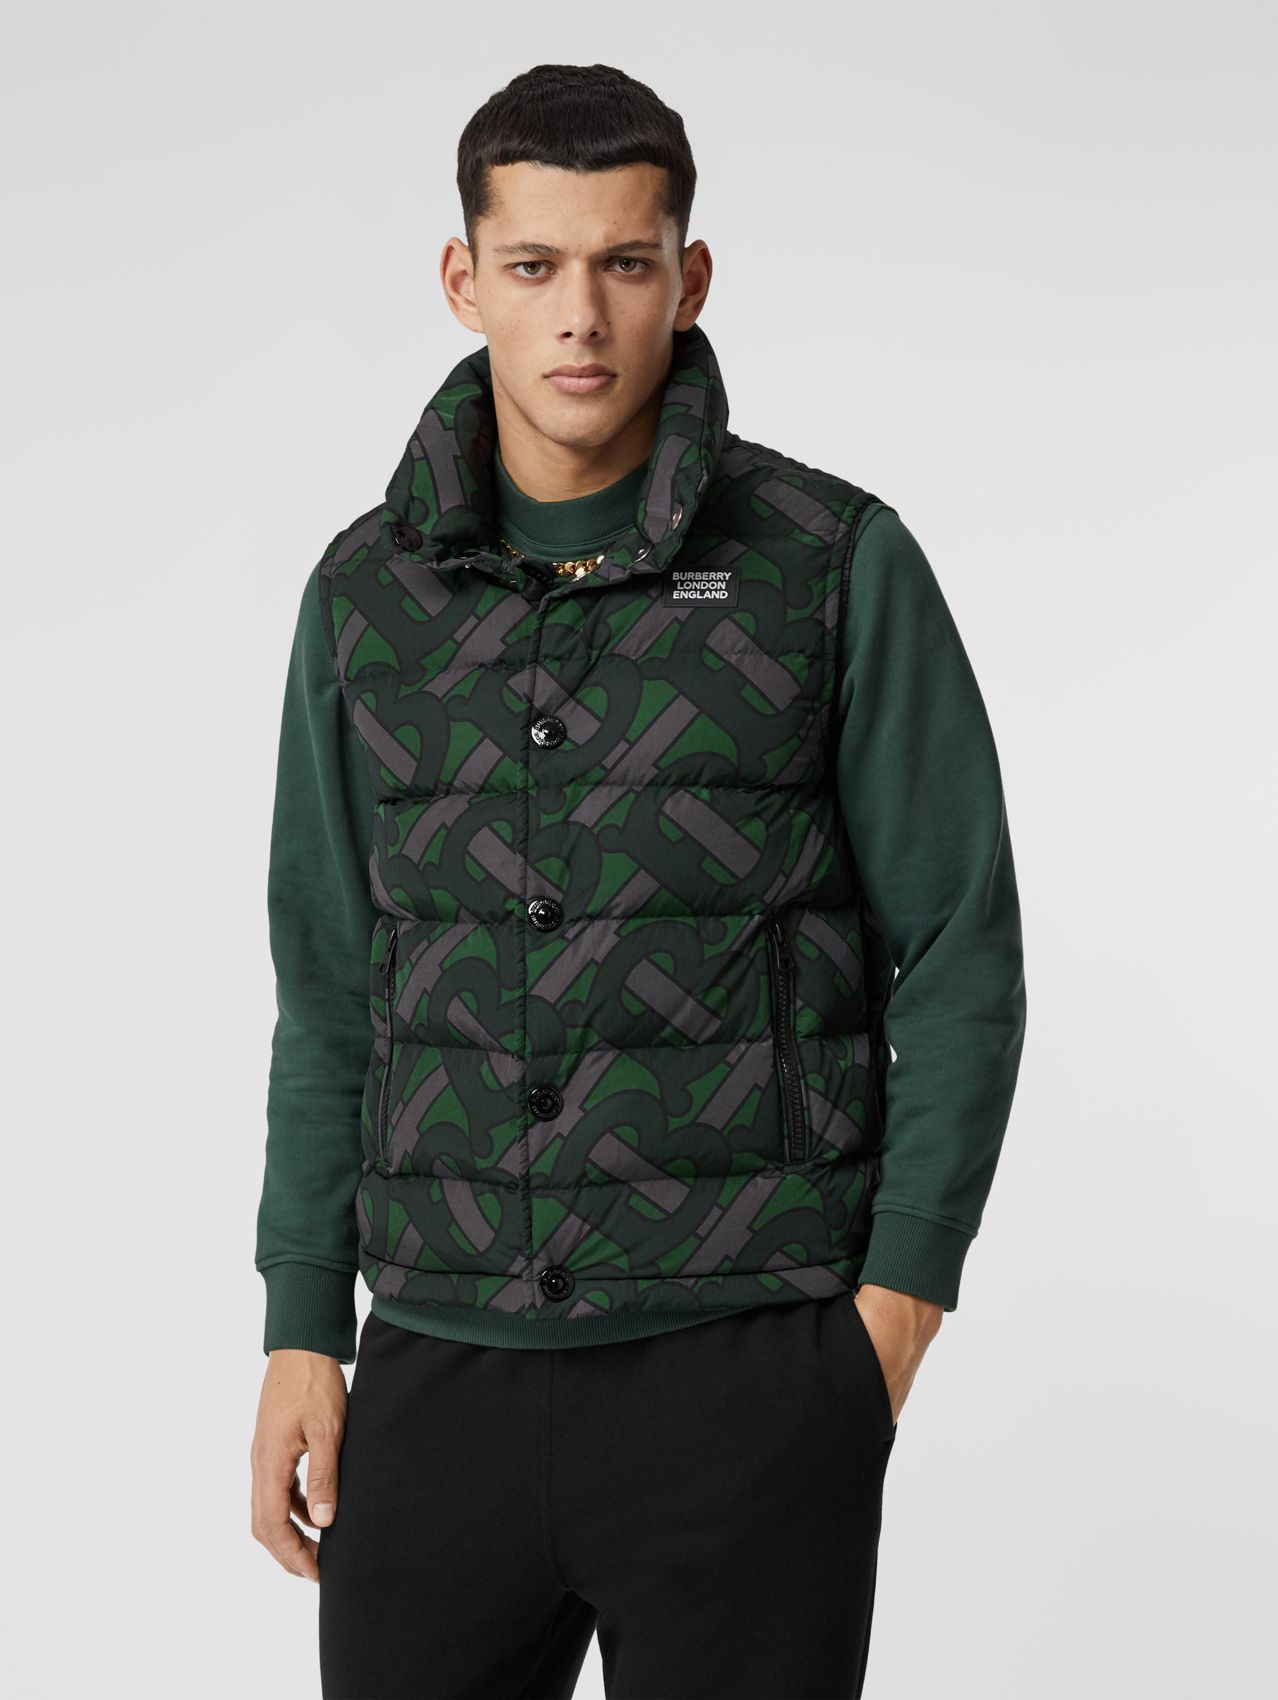 Monogram Print Puffer Gilet in Forest Green